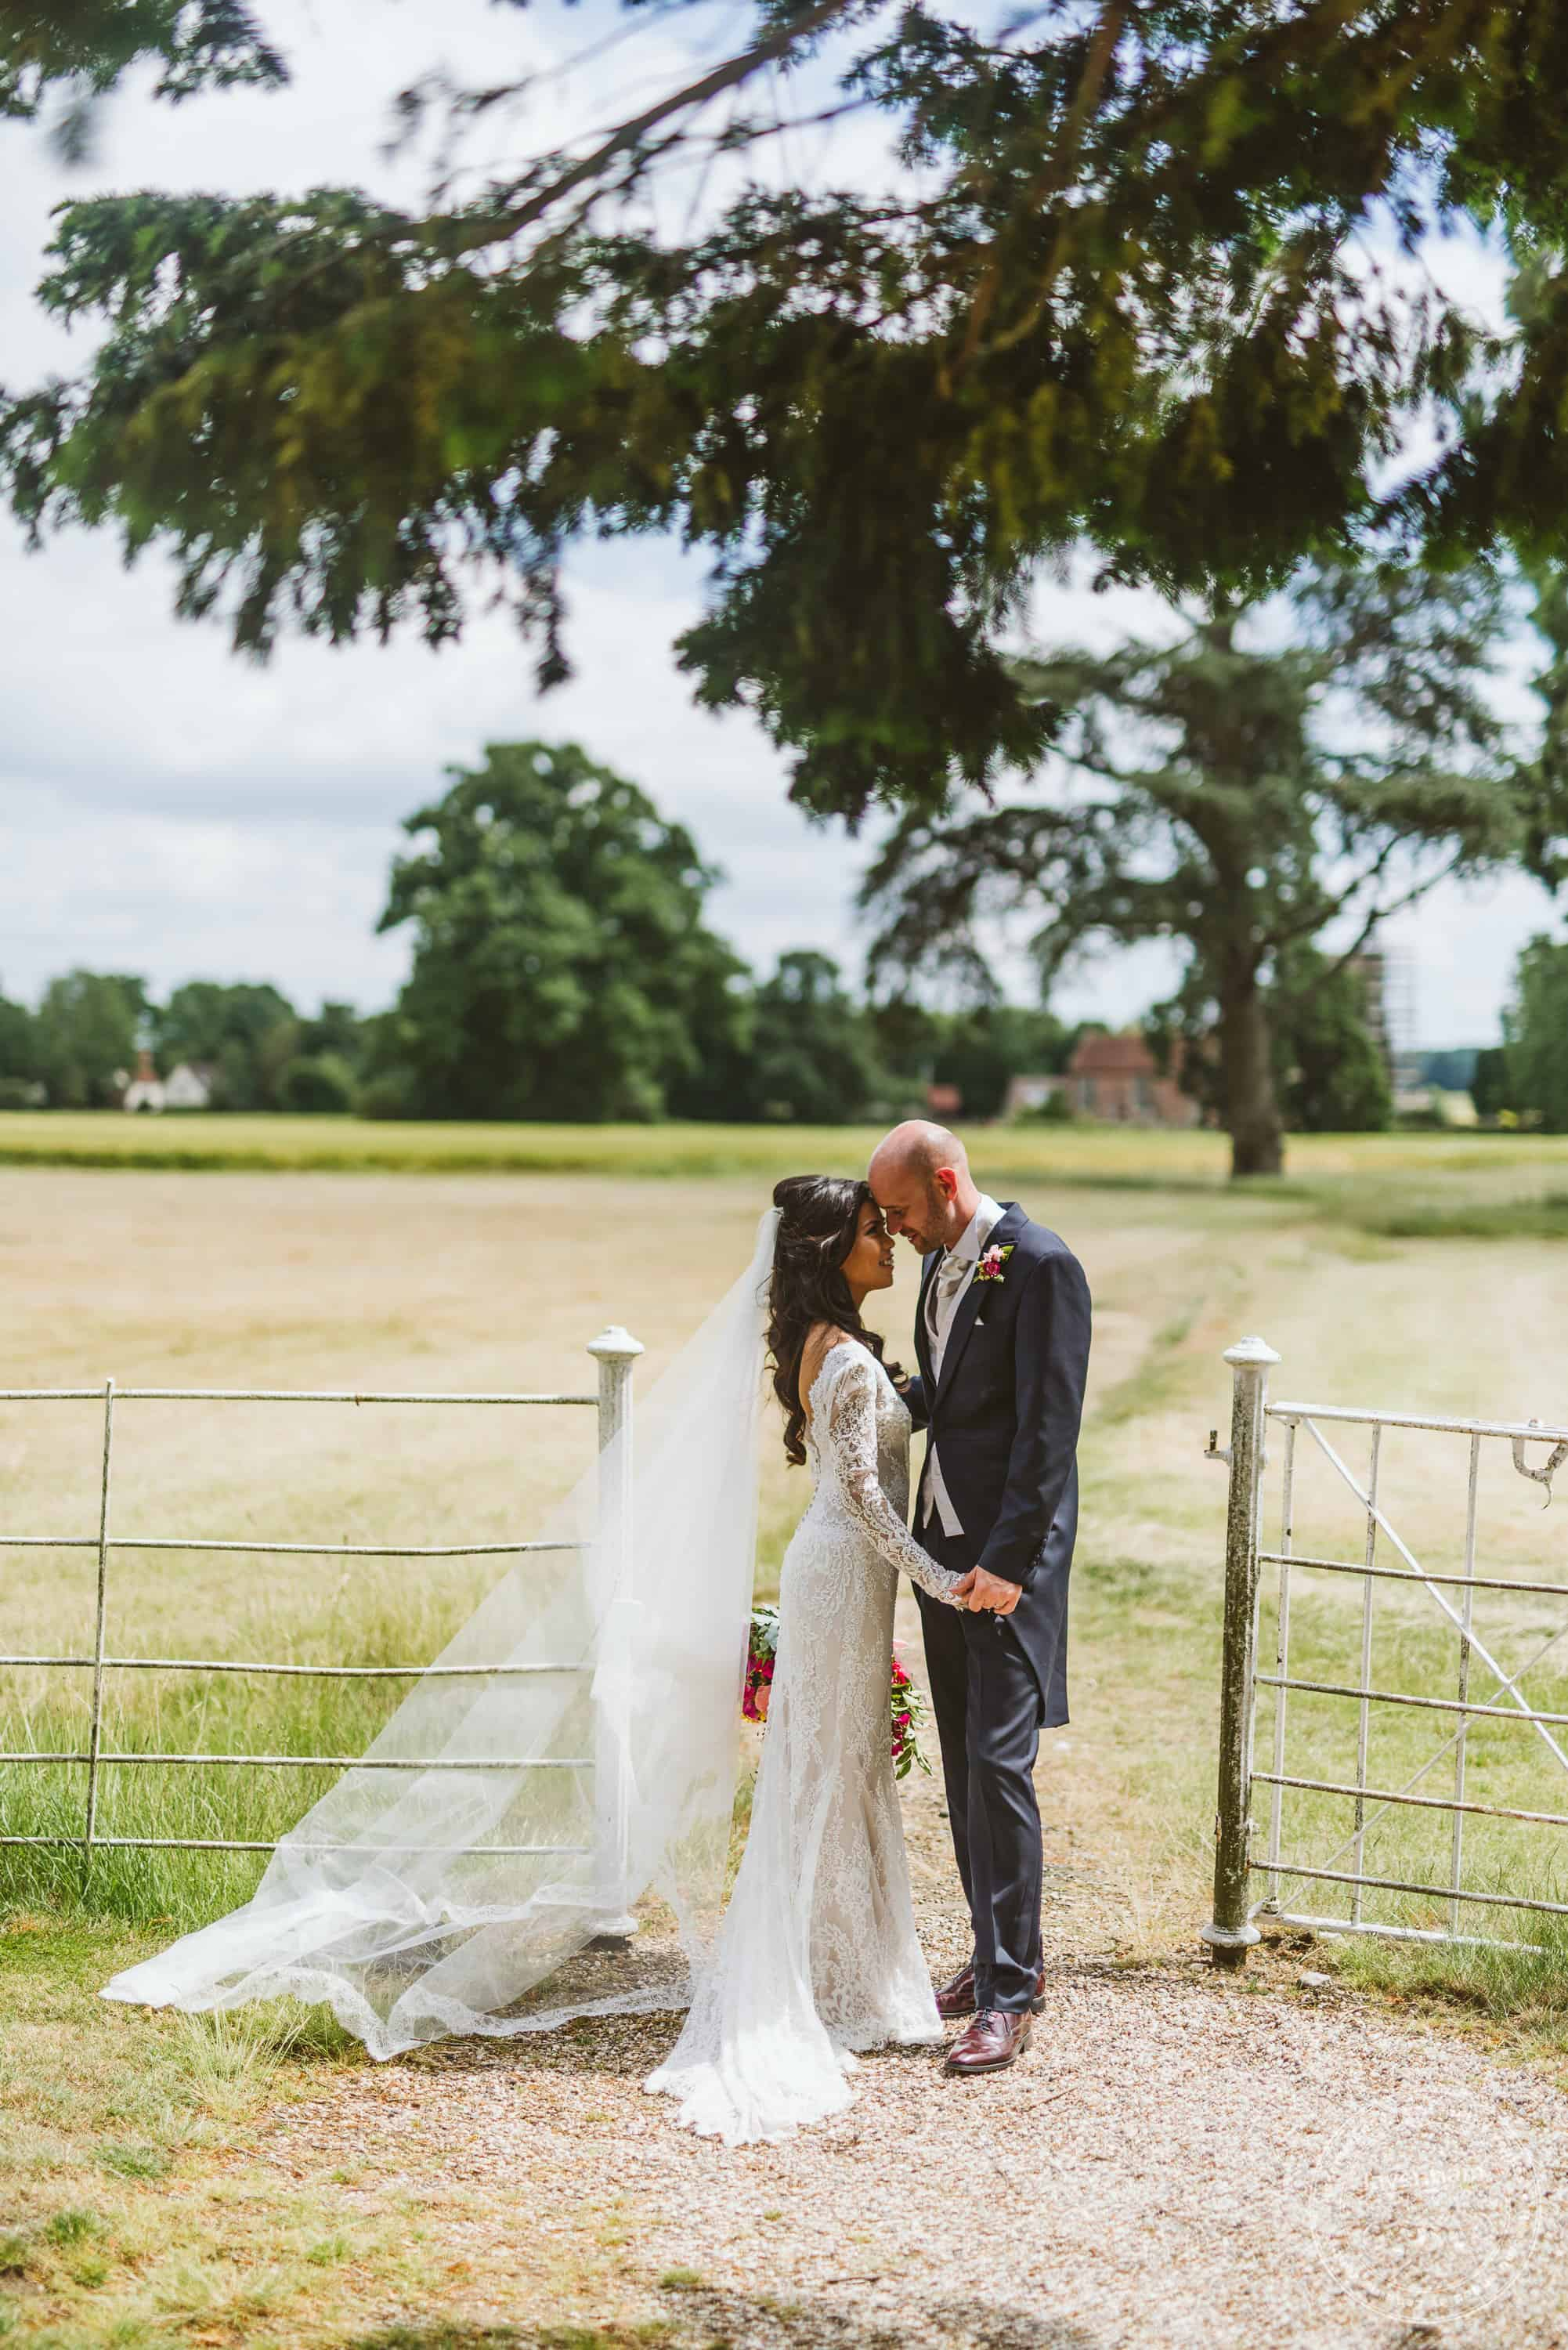 Very relaxed feeling wedding photograph at a quiet corner of the grounds at Gosfield Hall